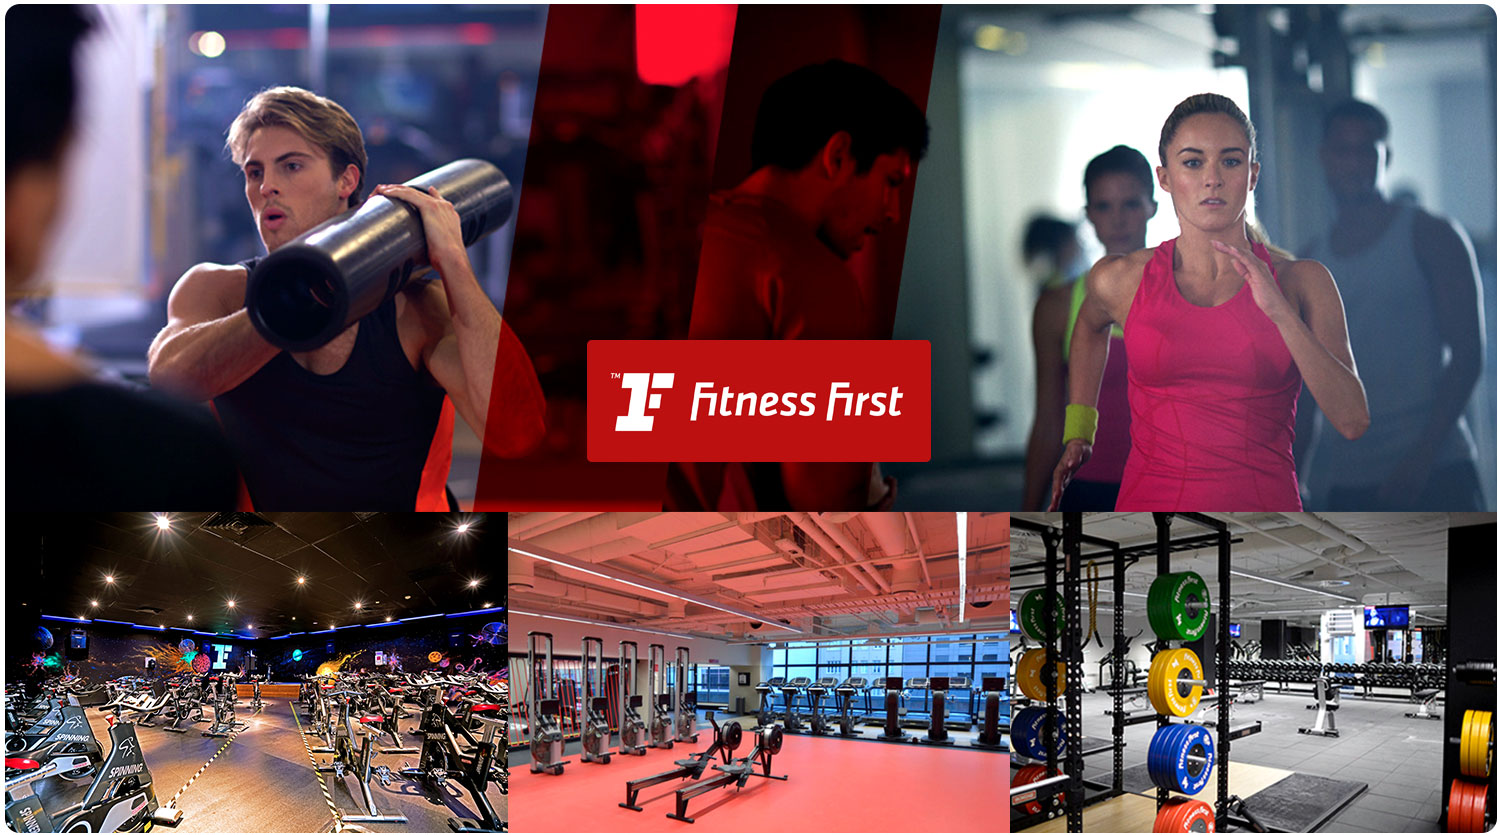 Start your Fitness Journey with Fitness First with only $14.95 for 14 days at Fitness First Robina QLD. Experience our first class gym and freestyle classes inc. Zumba, Pilates, Yoga, HIIT, Boxing, Les Mills and more. Take the first step with Fitness First Robina QLD.